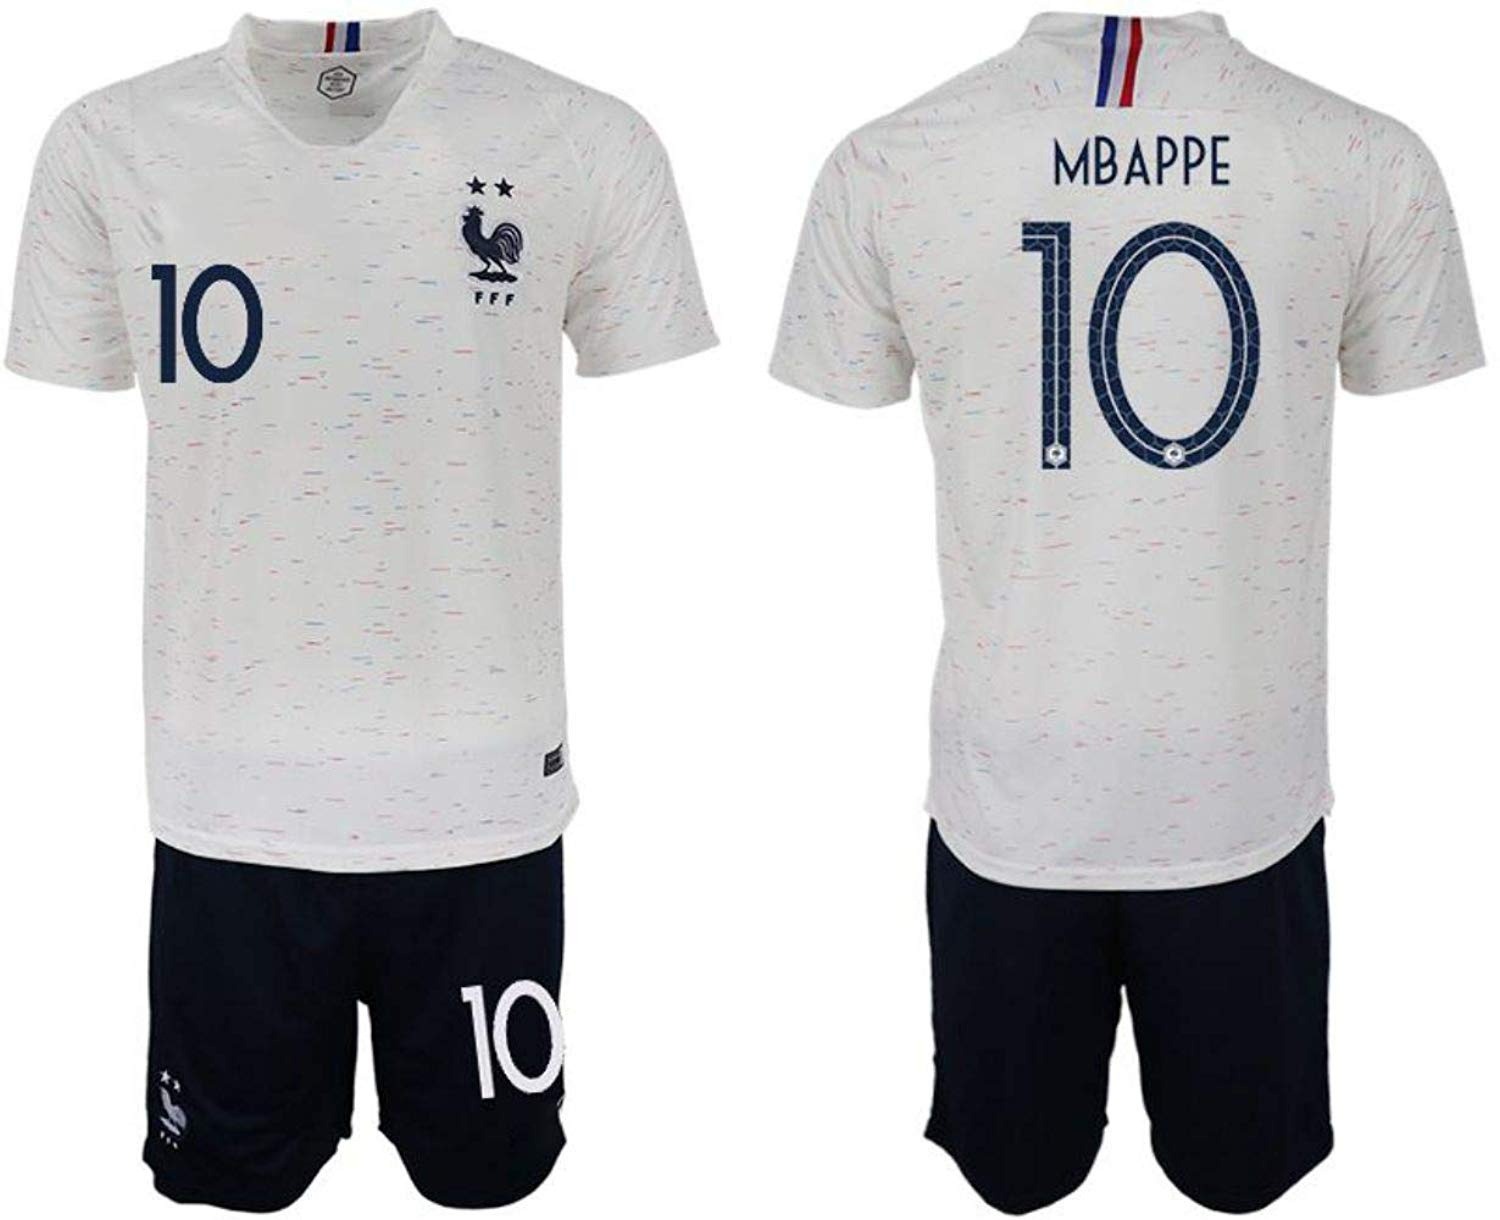 cc3c708f30a Get Quotations · 2018 Russia World Cup France Away Mens Soccer Jersey  Mbappe #10